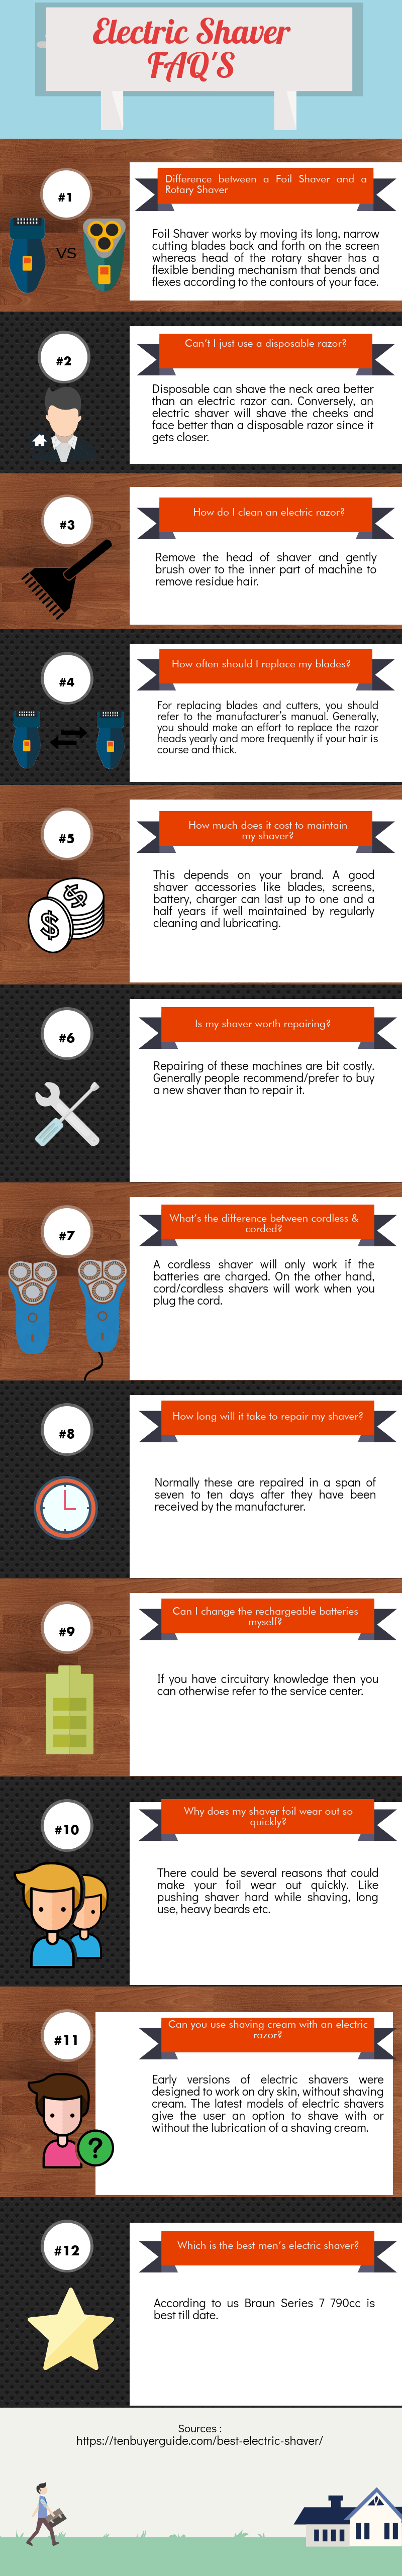 electric-shaver-faq-infographic